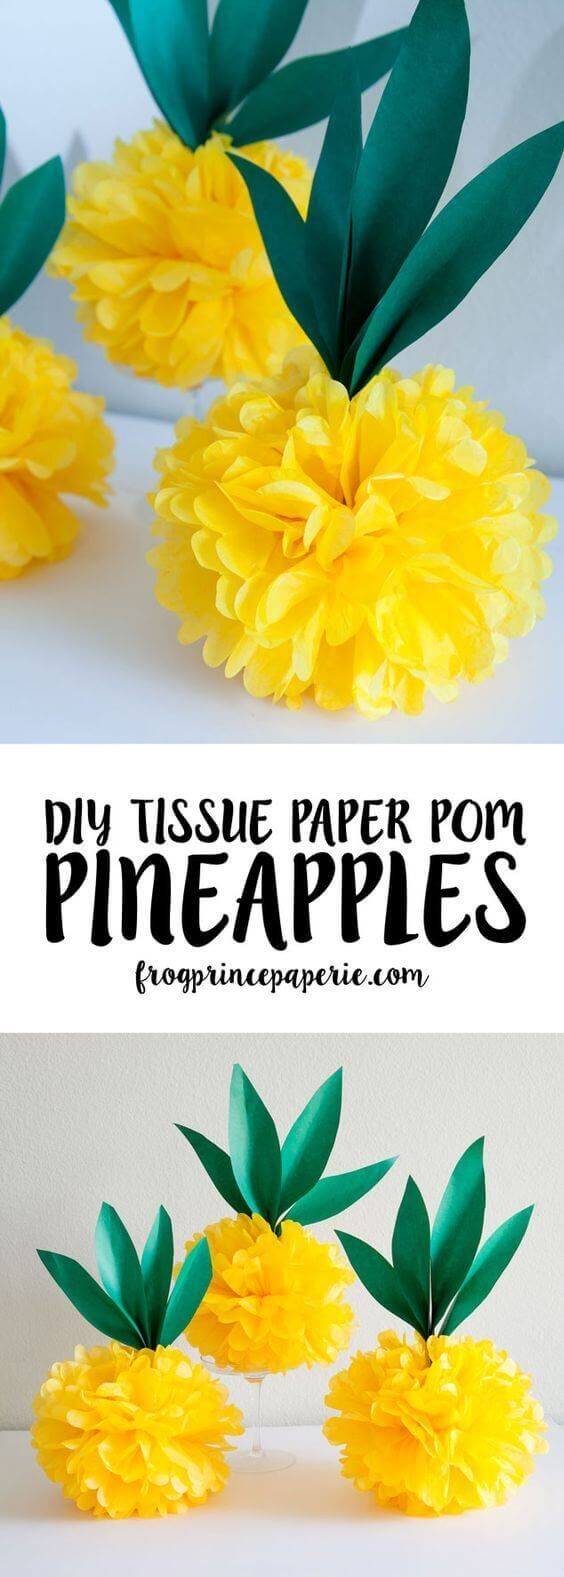 DIY Tissue Pineapples                                                                                                                                                                                 More